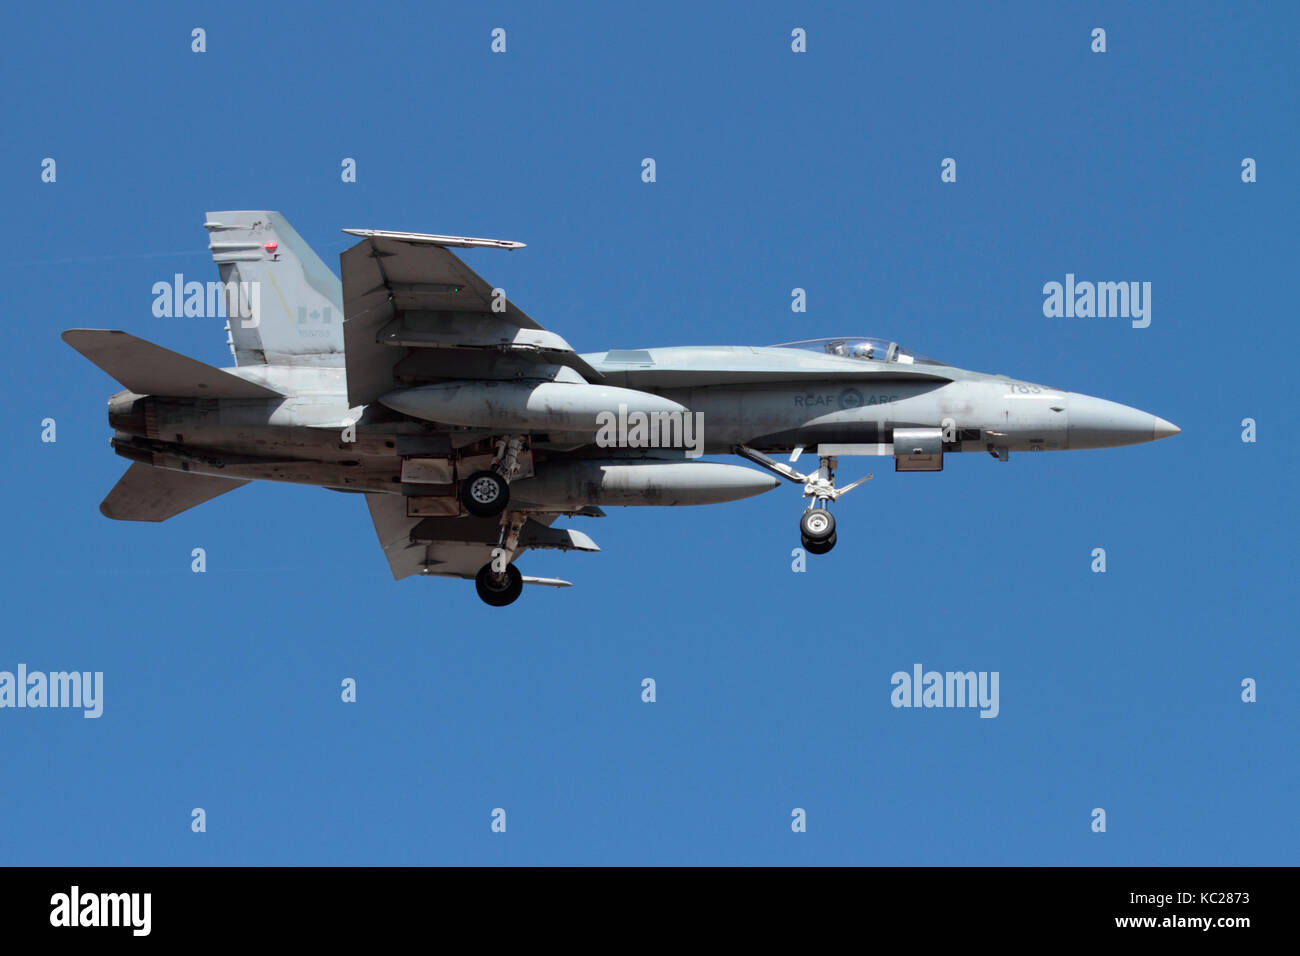 Modern military aviation. Royal Canadian Air Force CF-18 (CF-188) Hornet jet fighter plane on approach Stock Photo